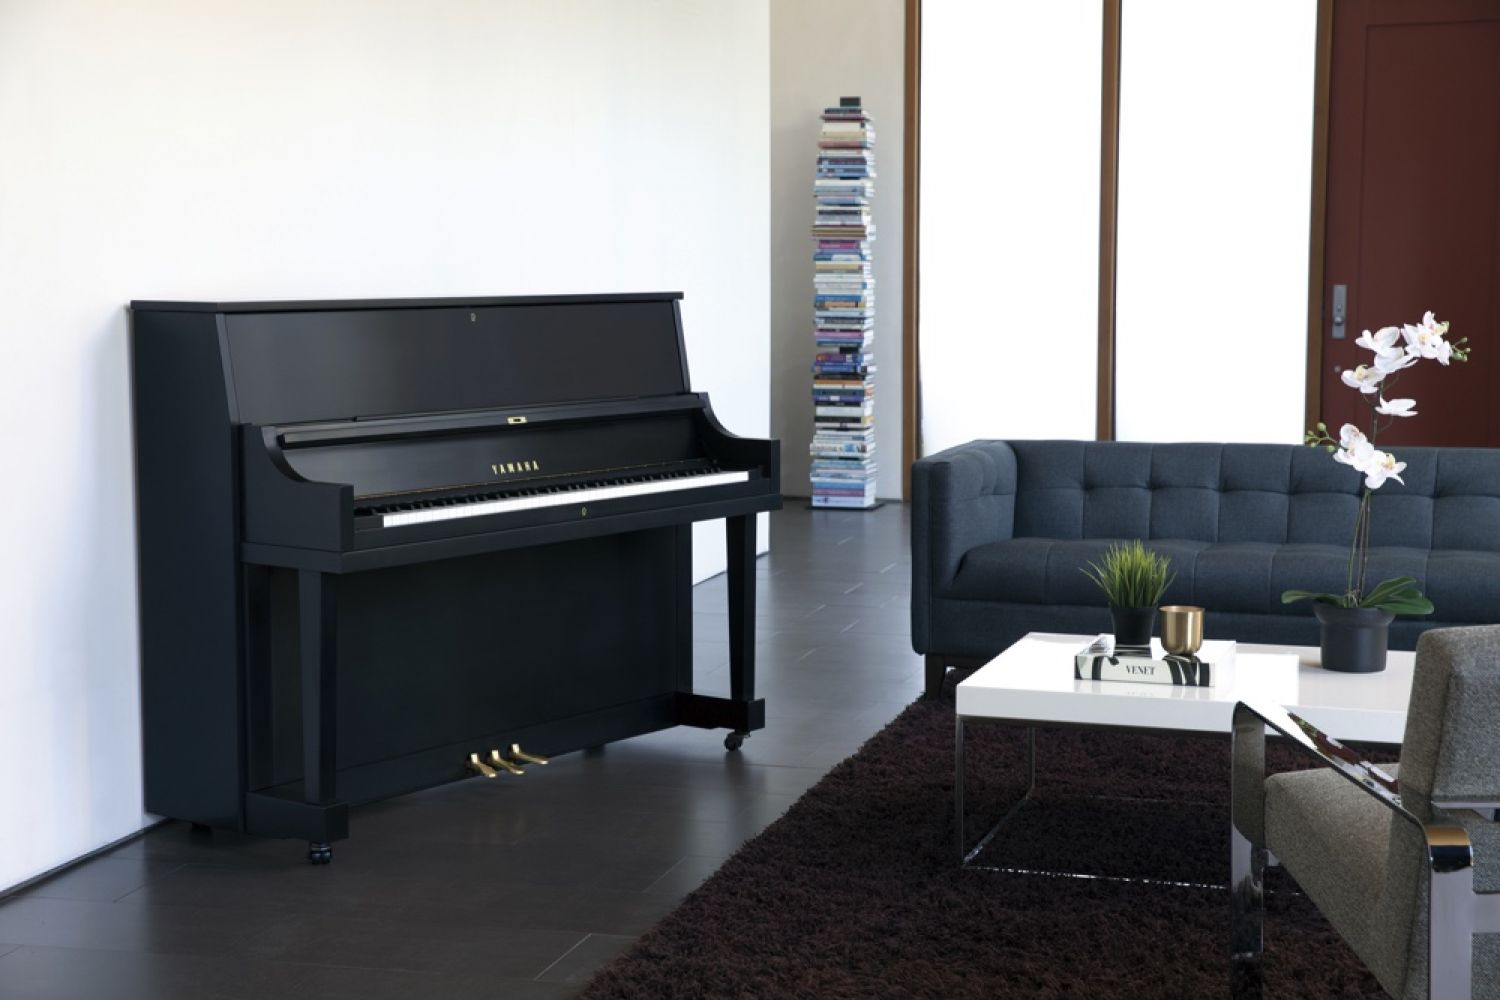 A Yamaha upright piano in a modern living room.